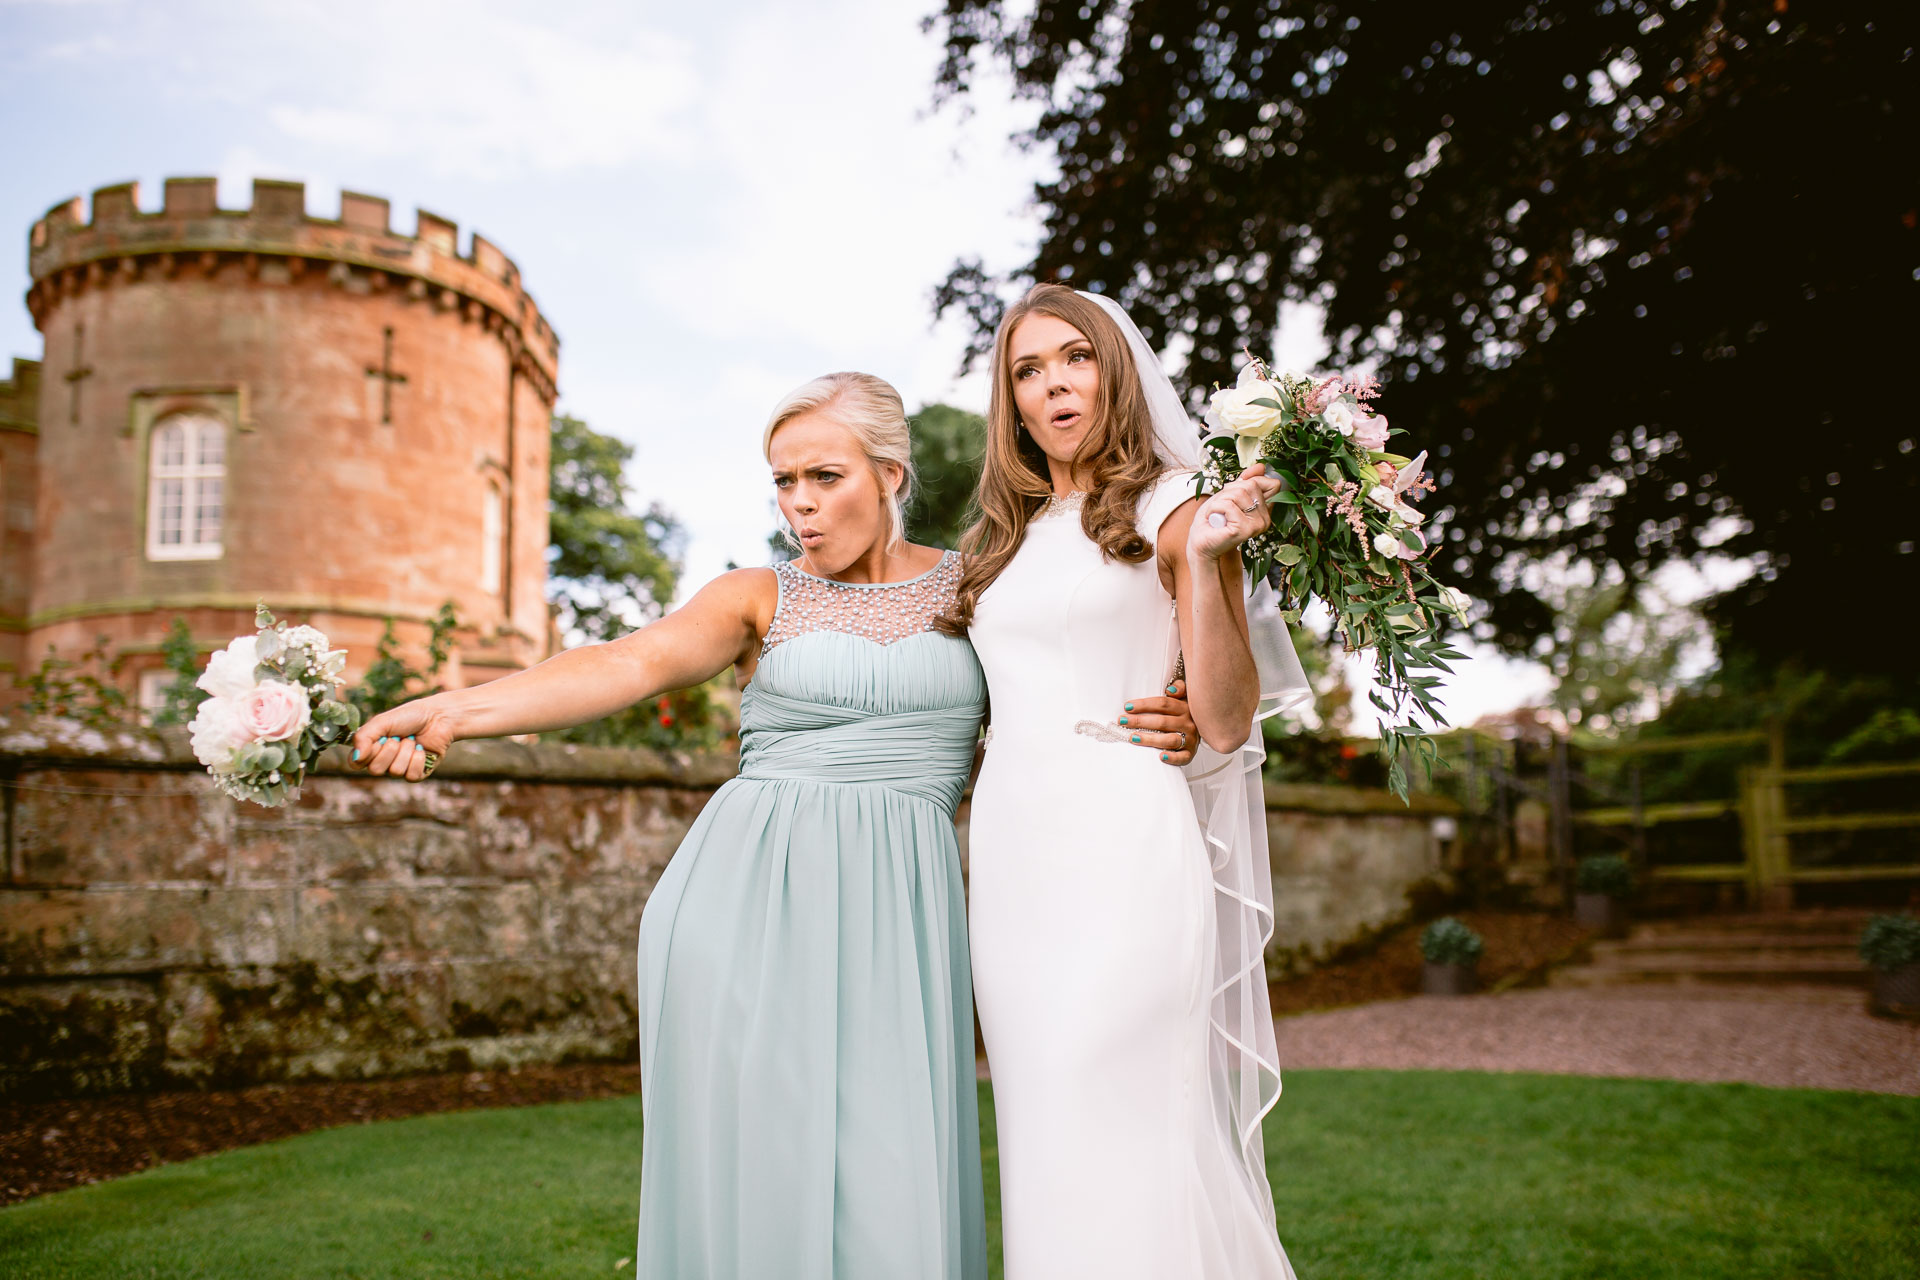 The Citadel wedding Shropshire Sarah-Jane and Steve bride and her sister making silly pose and posing